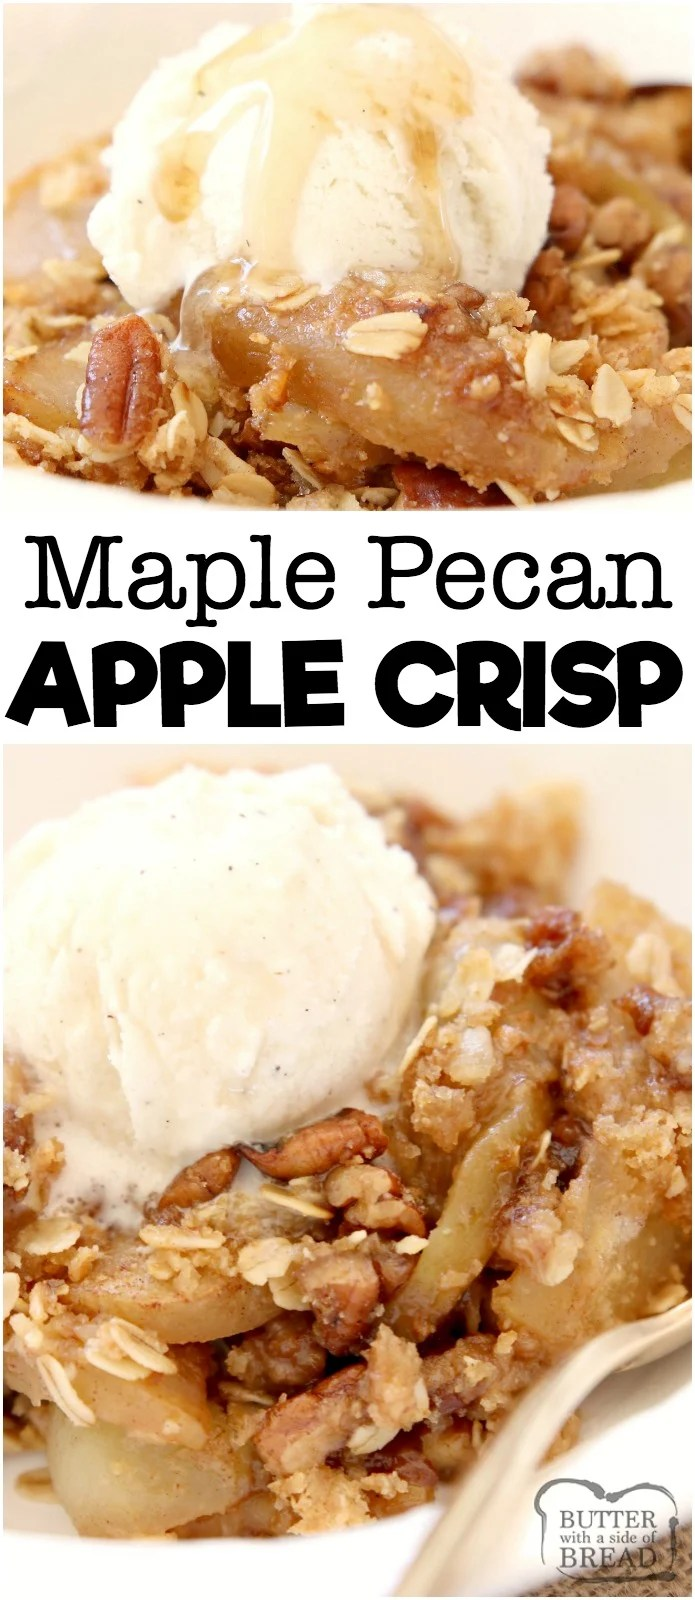 Maple Pecan Apple Crisp made with oats, pecans, brown sugar, butter and apples in a perfect Fall dish bursting with fresh apple flavor! Topped with real maple syrup, this apple crisp recipe is our all-time favorite!